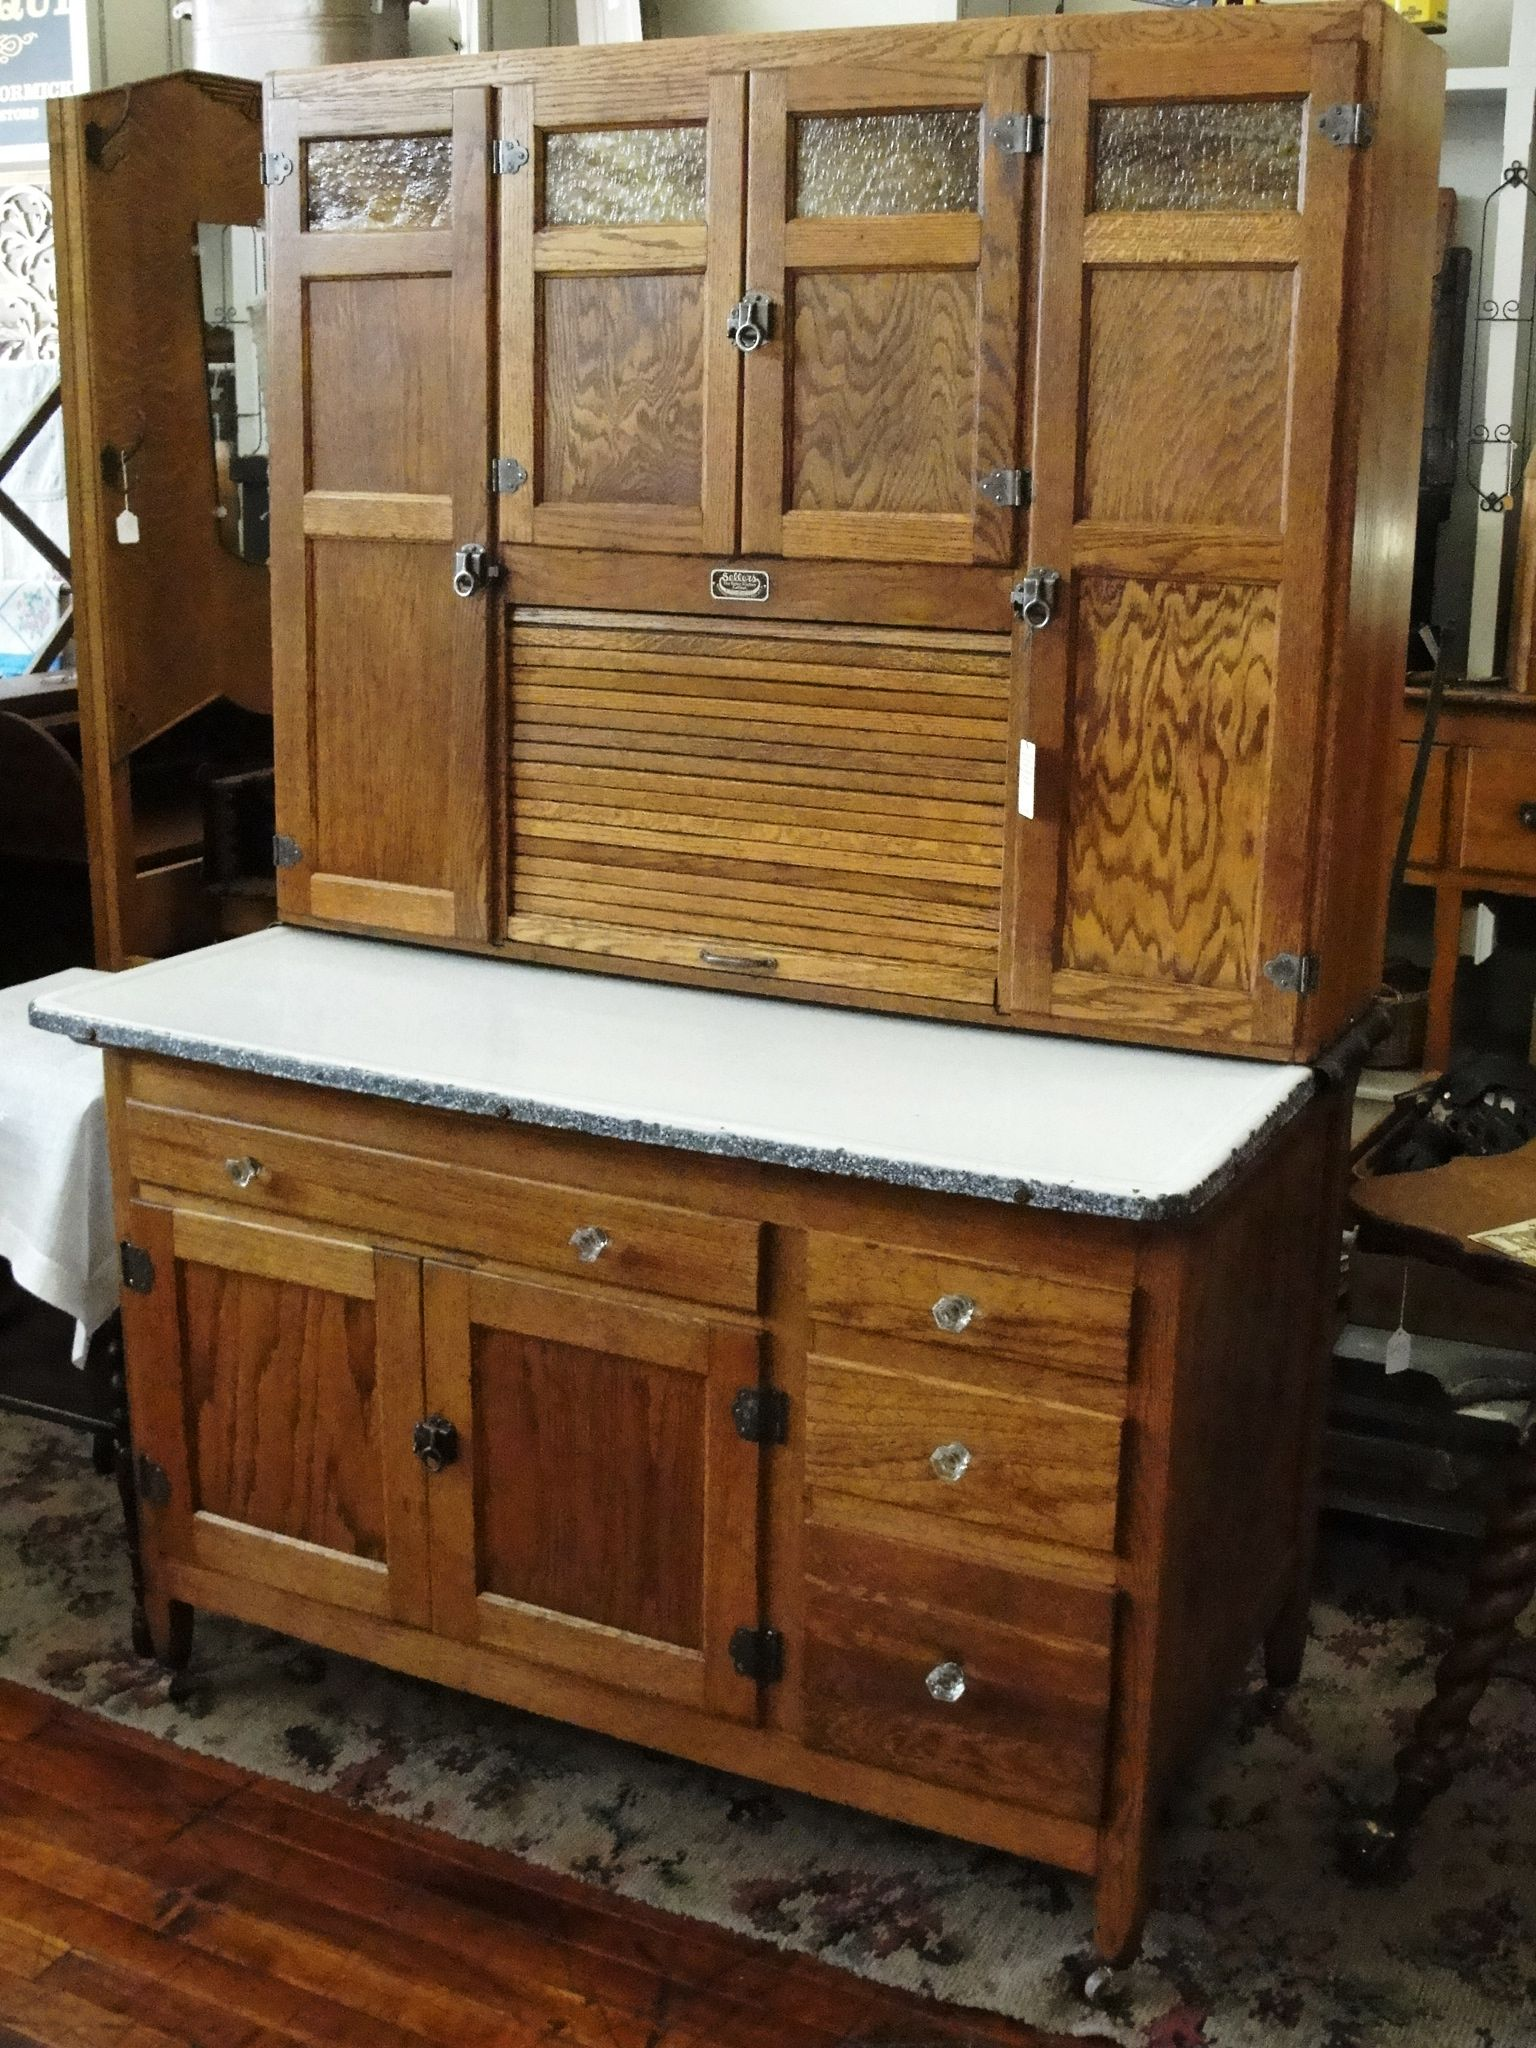 Sellers Mastercraft Kitchen Cabinet From Bread Butter Antiques Vintage Cabinets Kitchen Cabinet Design Hoosier Cabinets